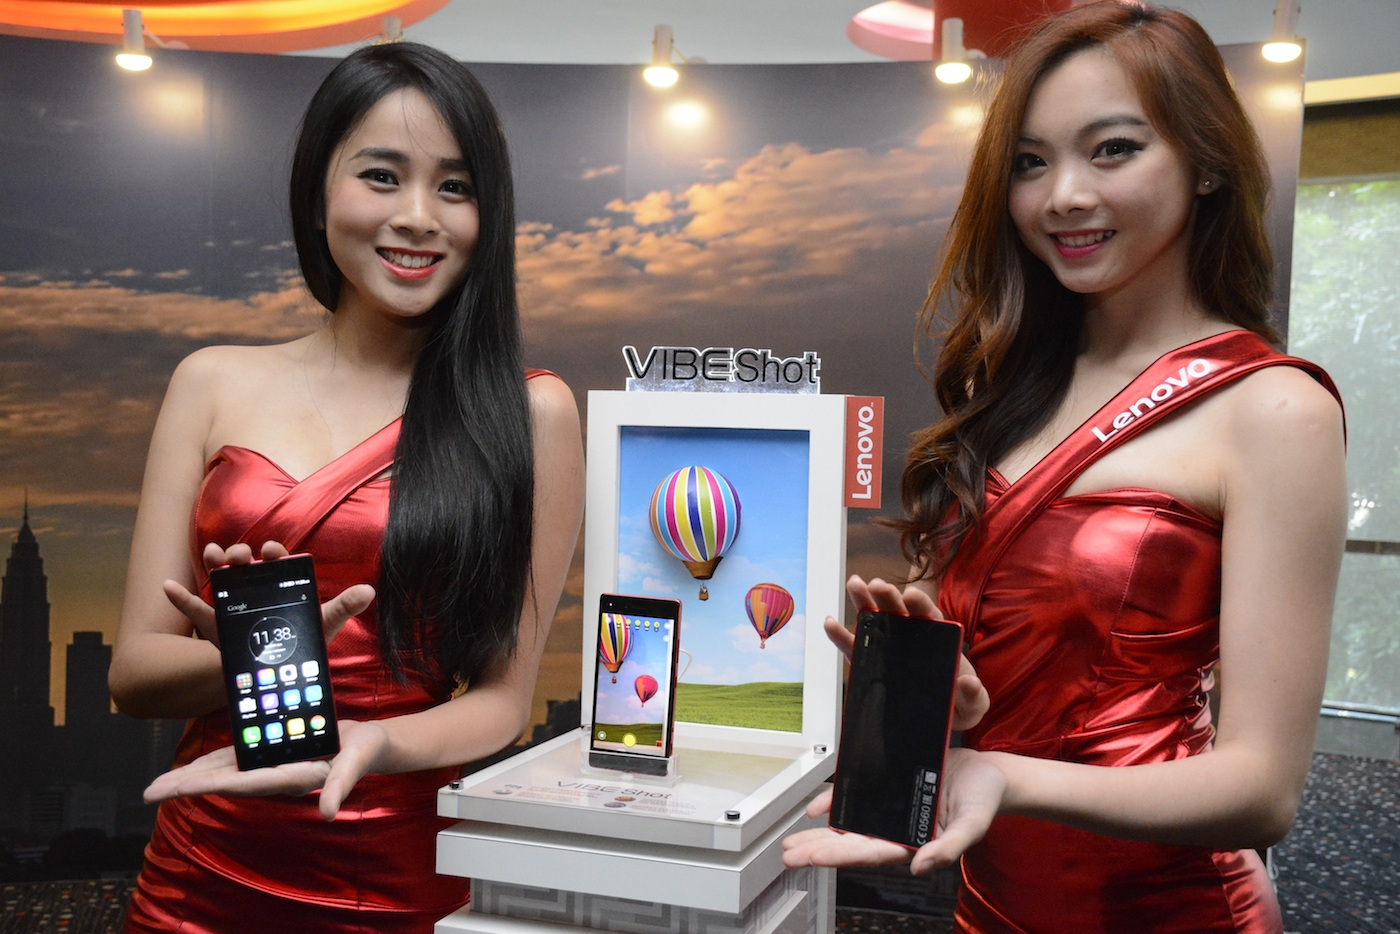 Lenovo Vibe Shot The First Camera Smartphone Crossover Device Grey Models Showcasing During Media Event